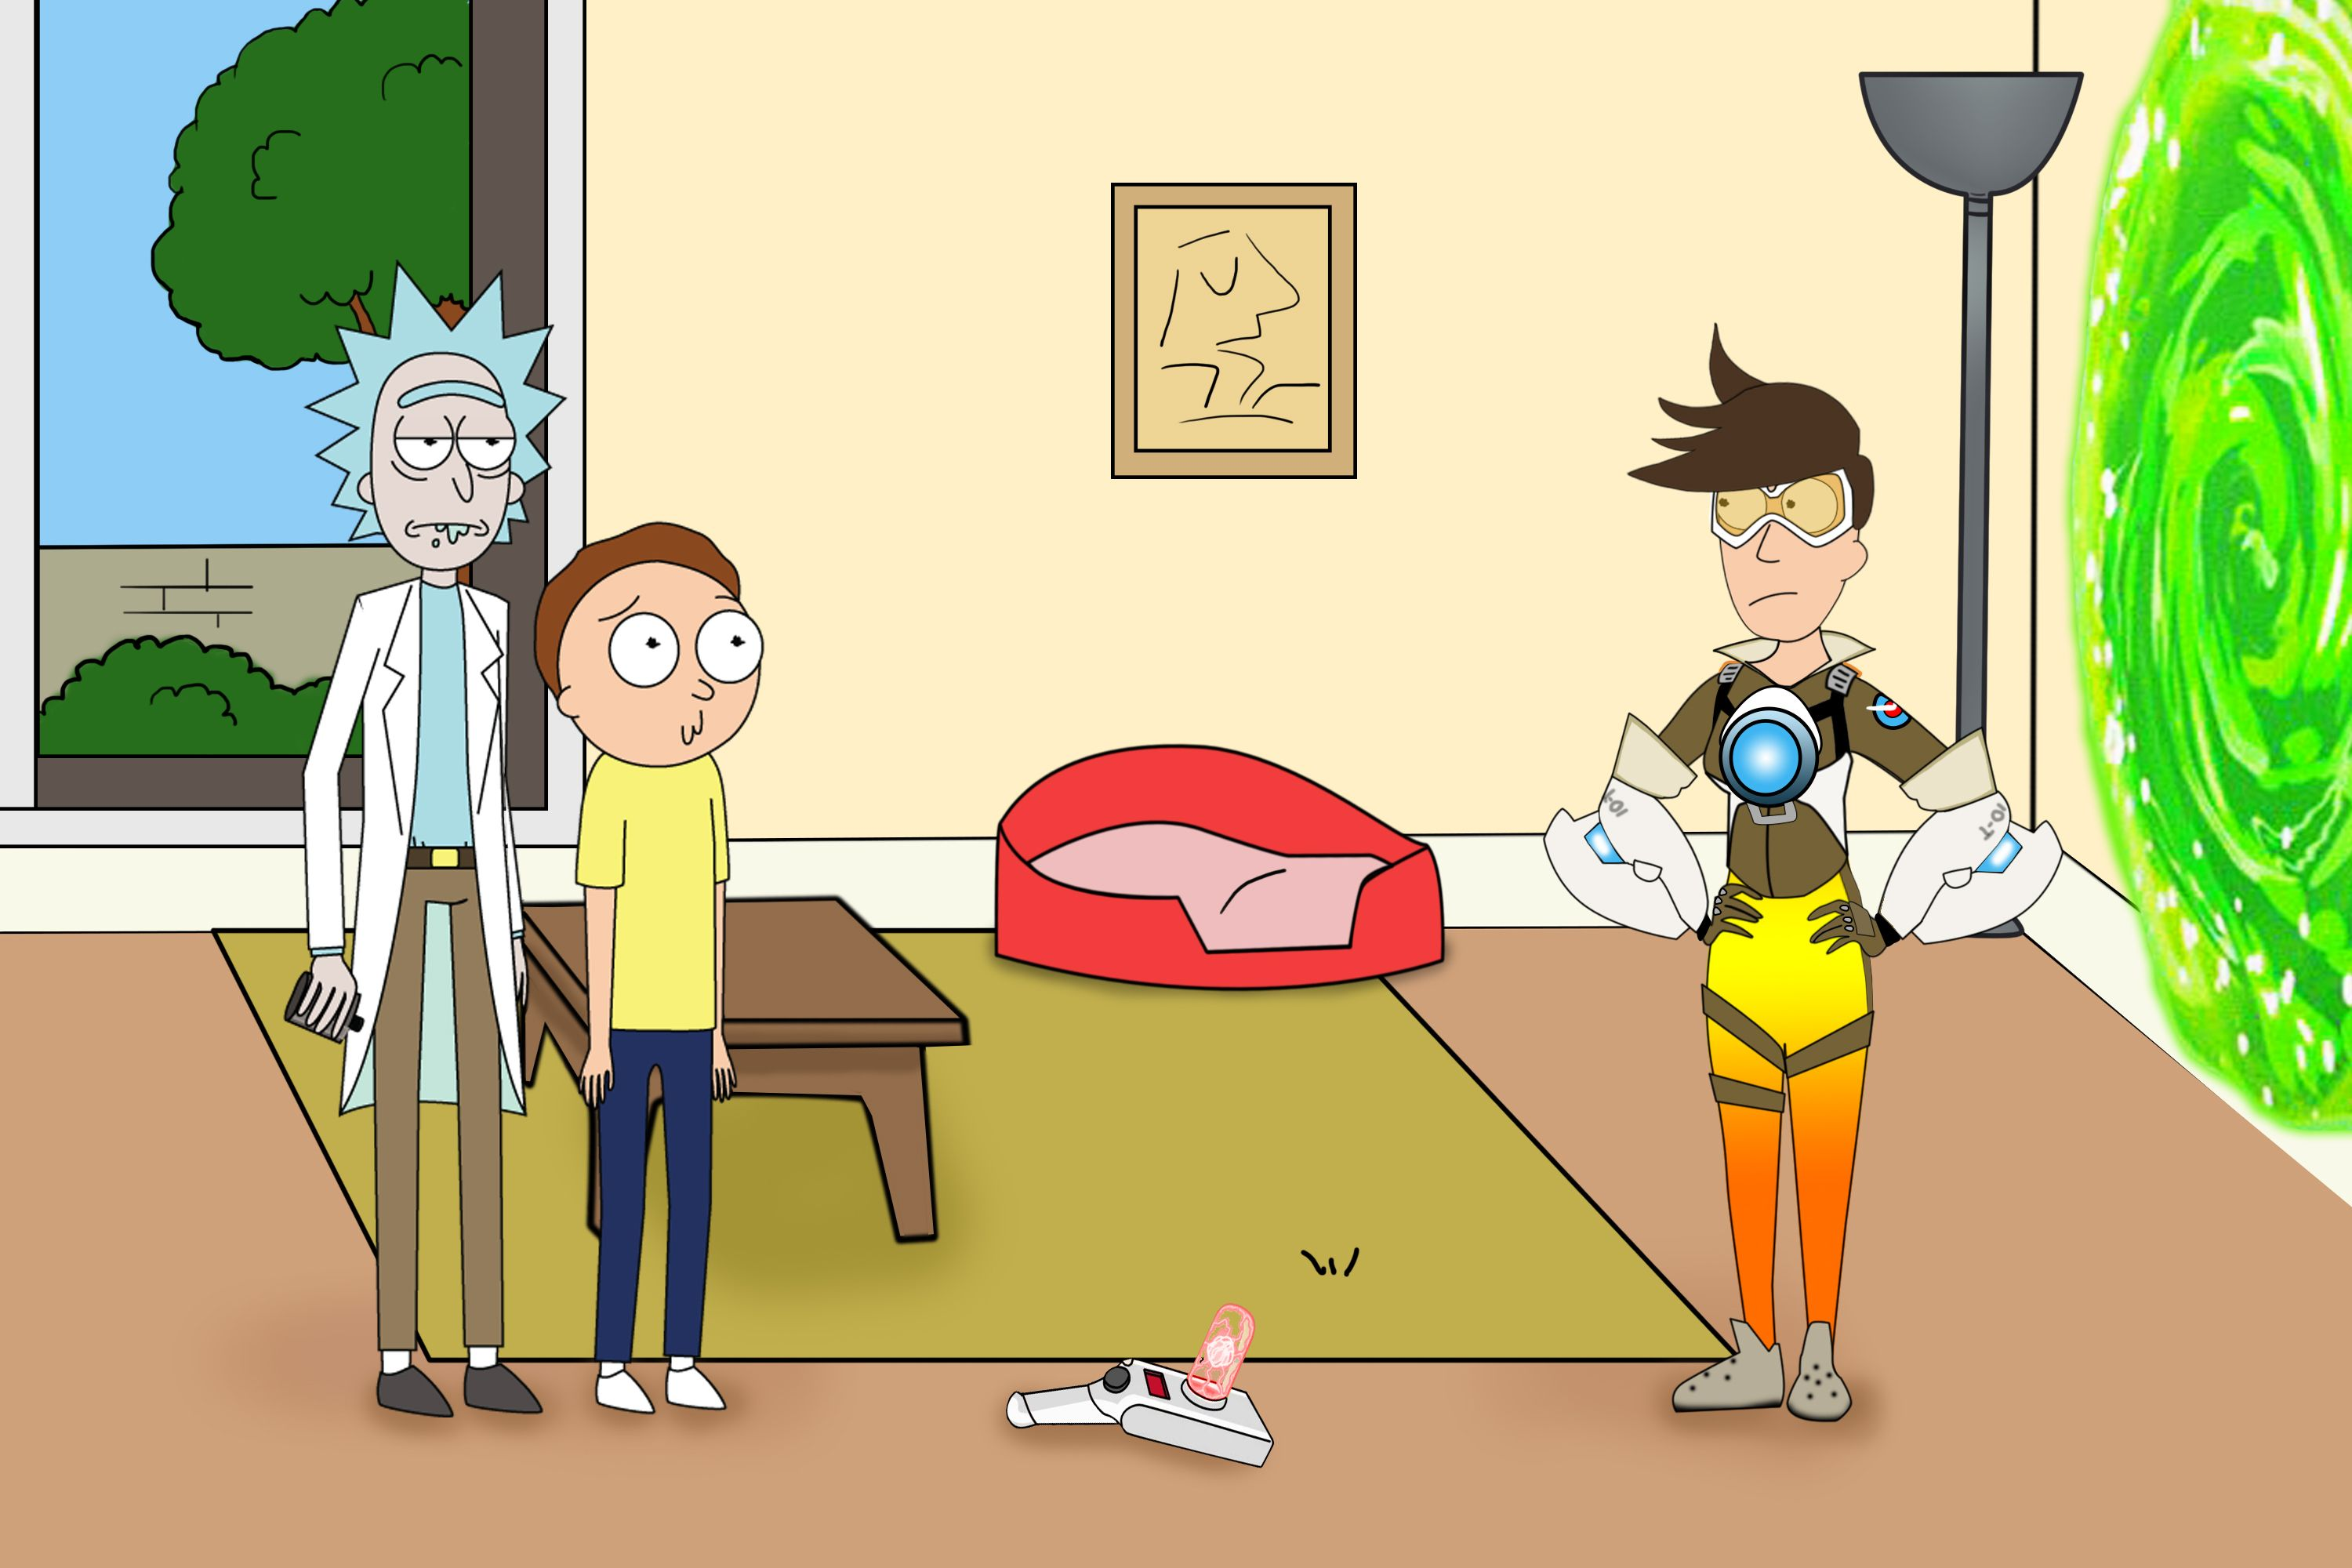 Rick and Morty and Tracer #myart #art #rickandmorty #tracer ...